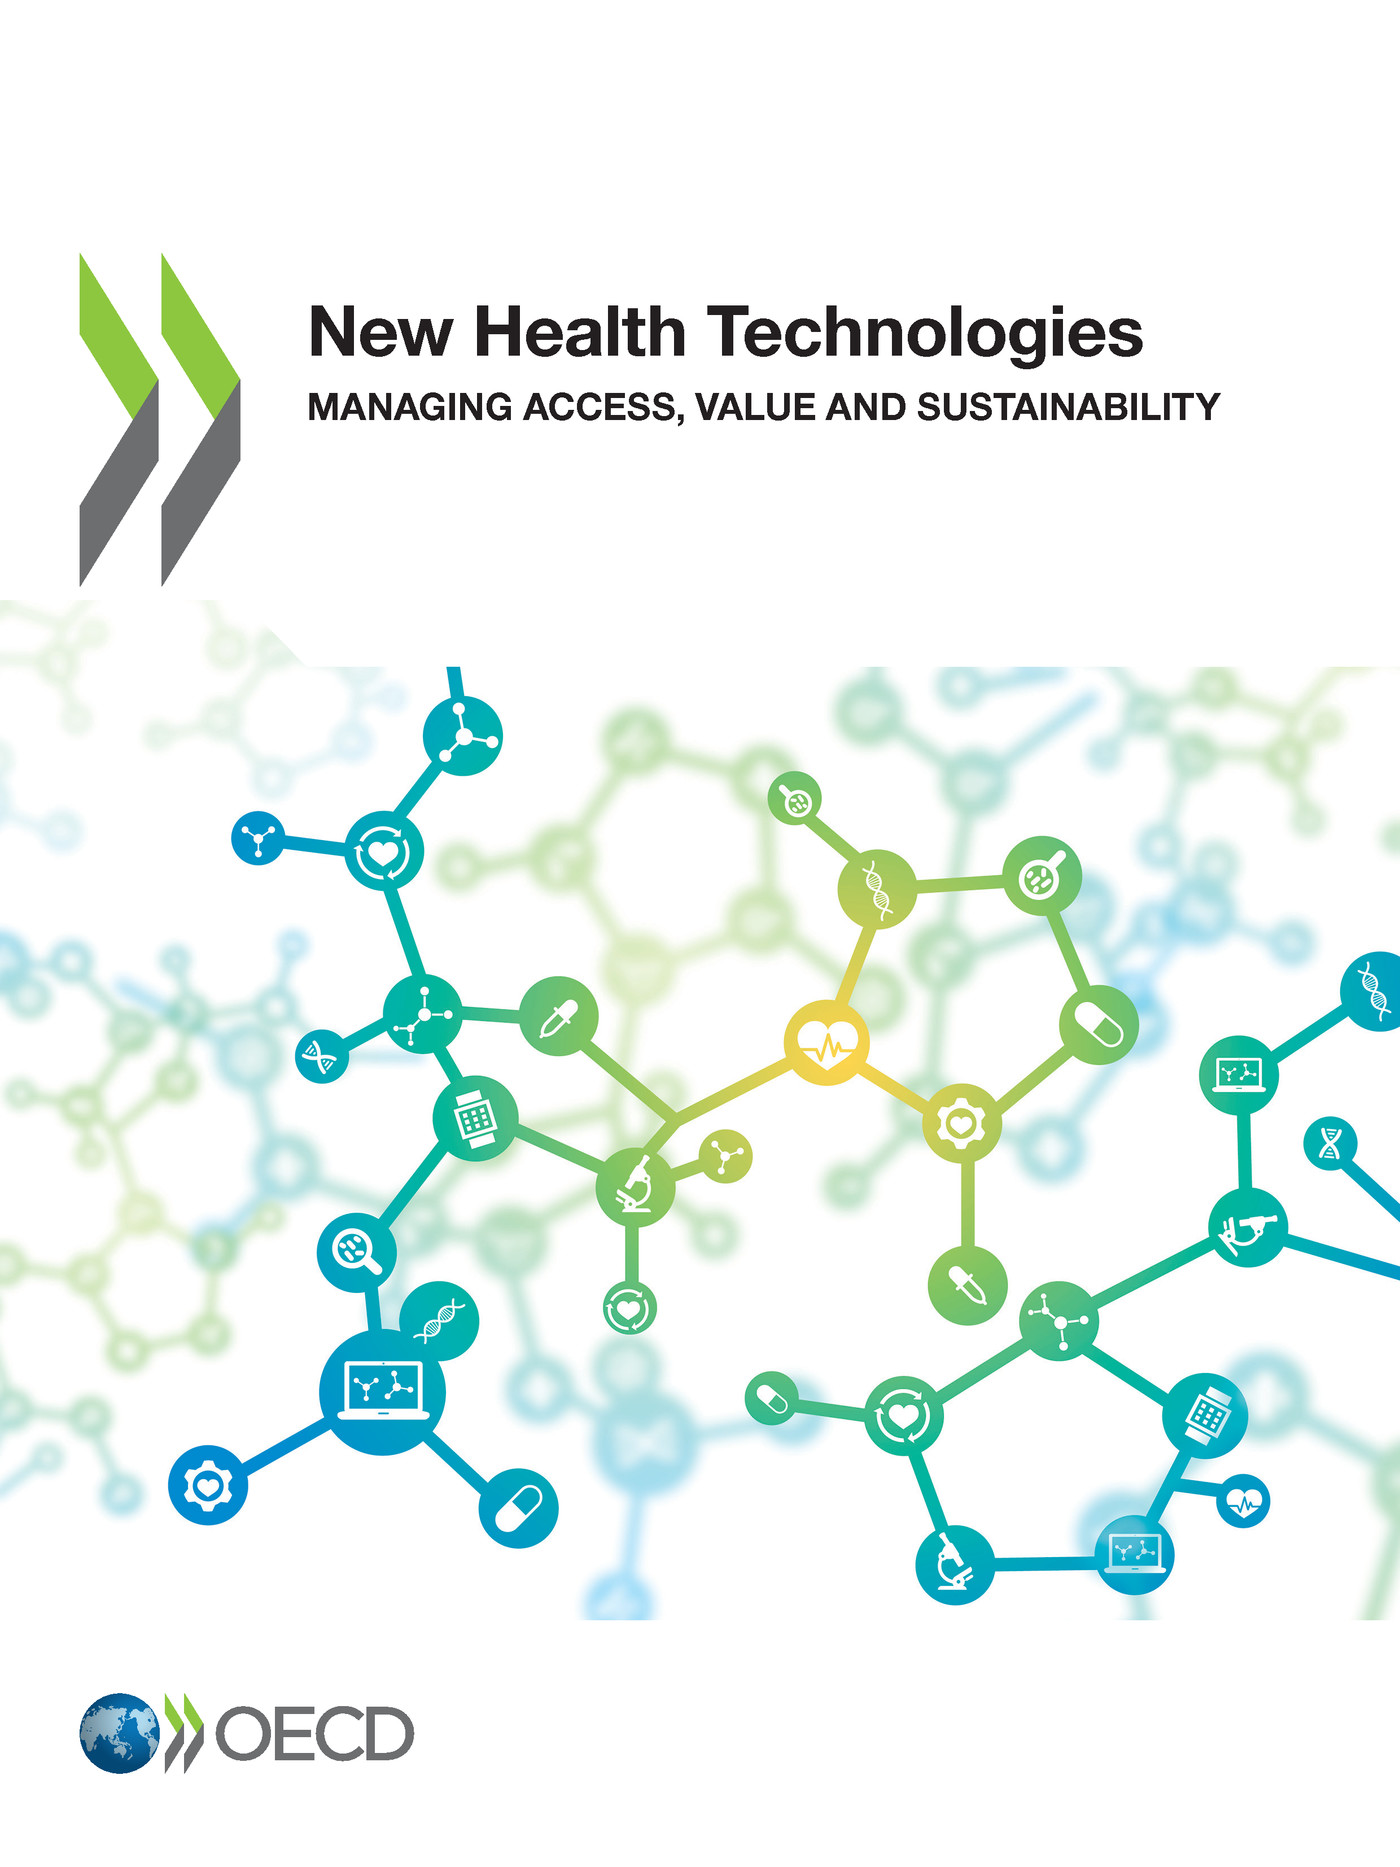 New Health Technologies De  Collectif - OCDE / OECD